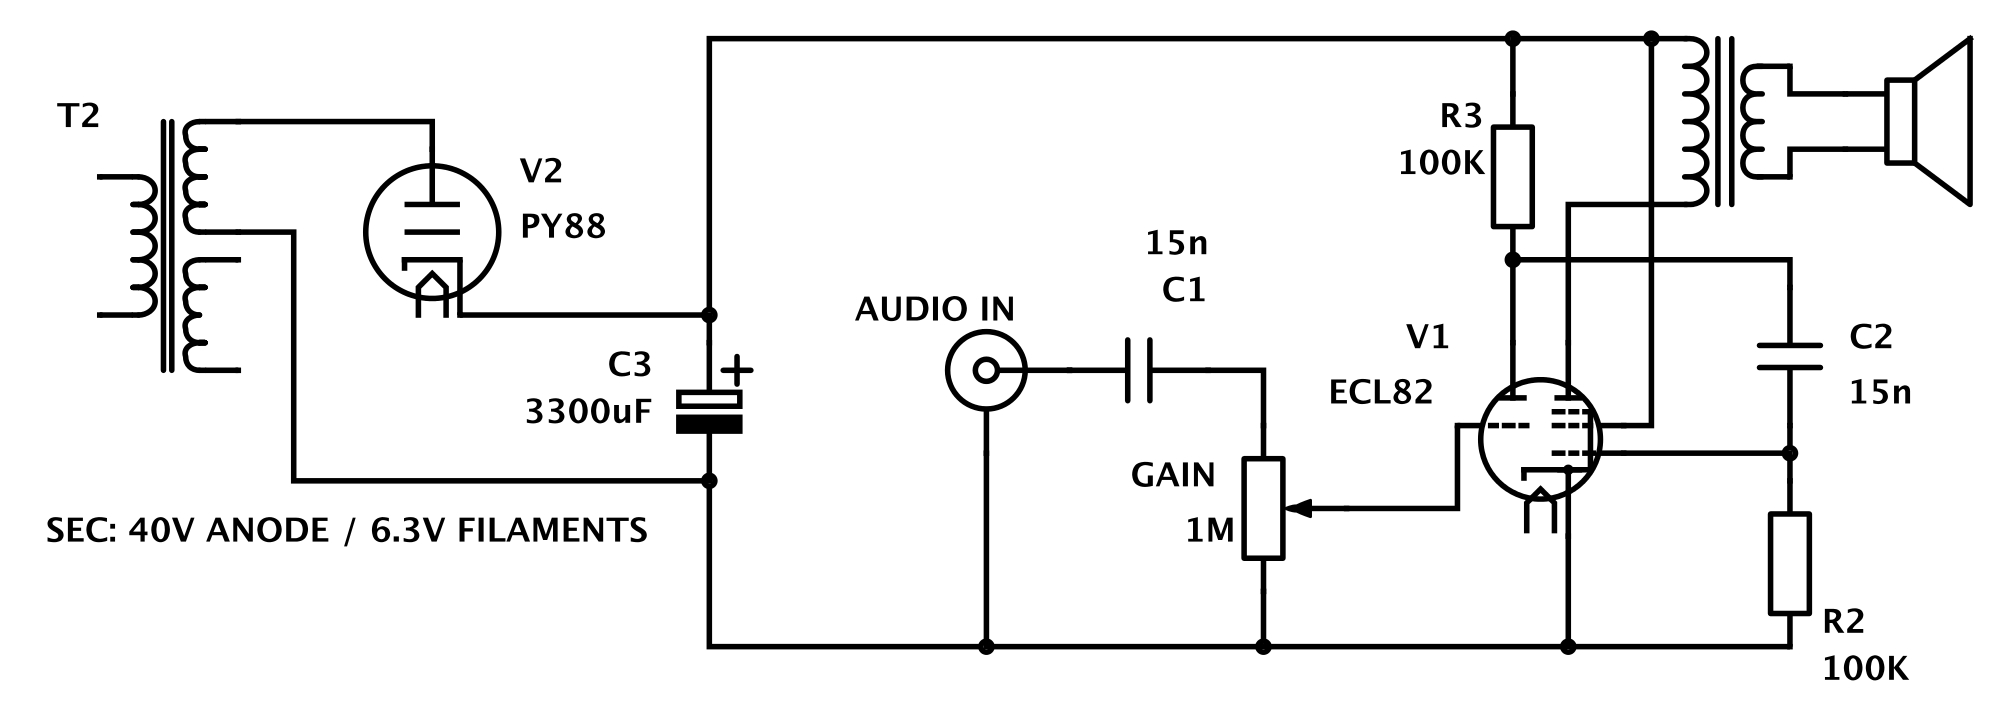 4949751414932586198 low voltage tube amp is great for beginners hackaday Simple Wiring Schematics at fashall.co